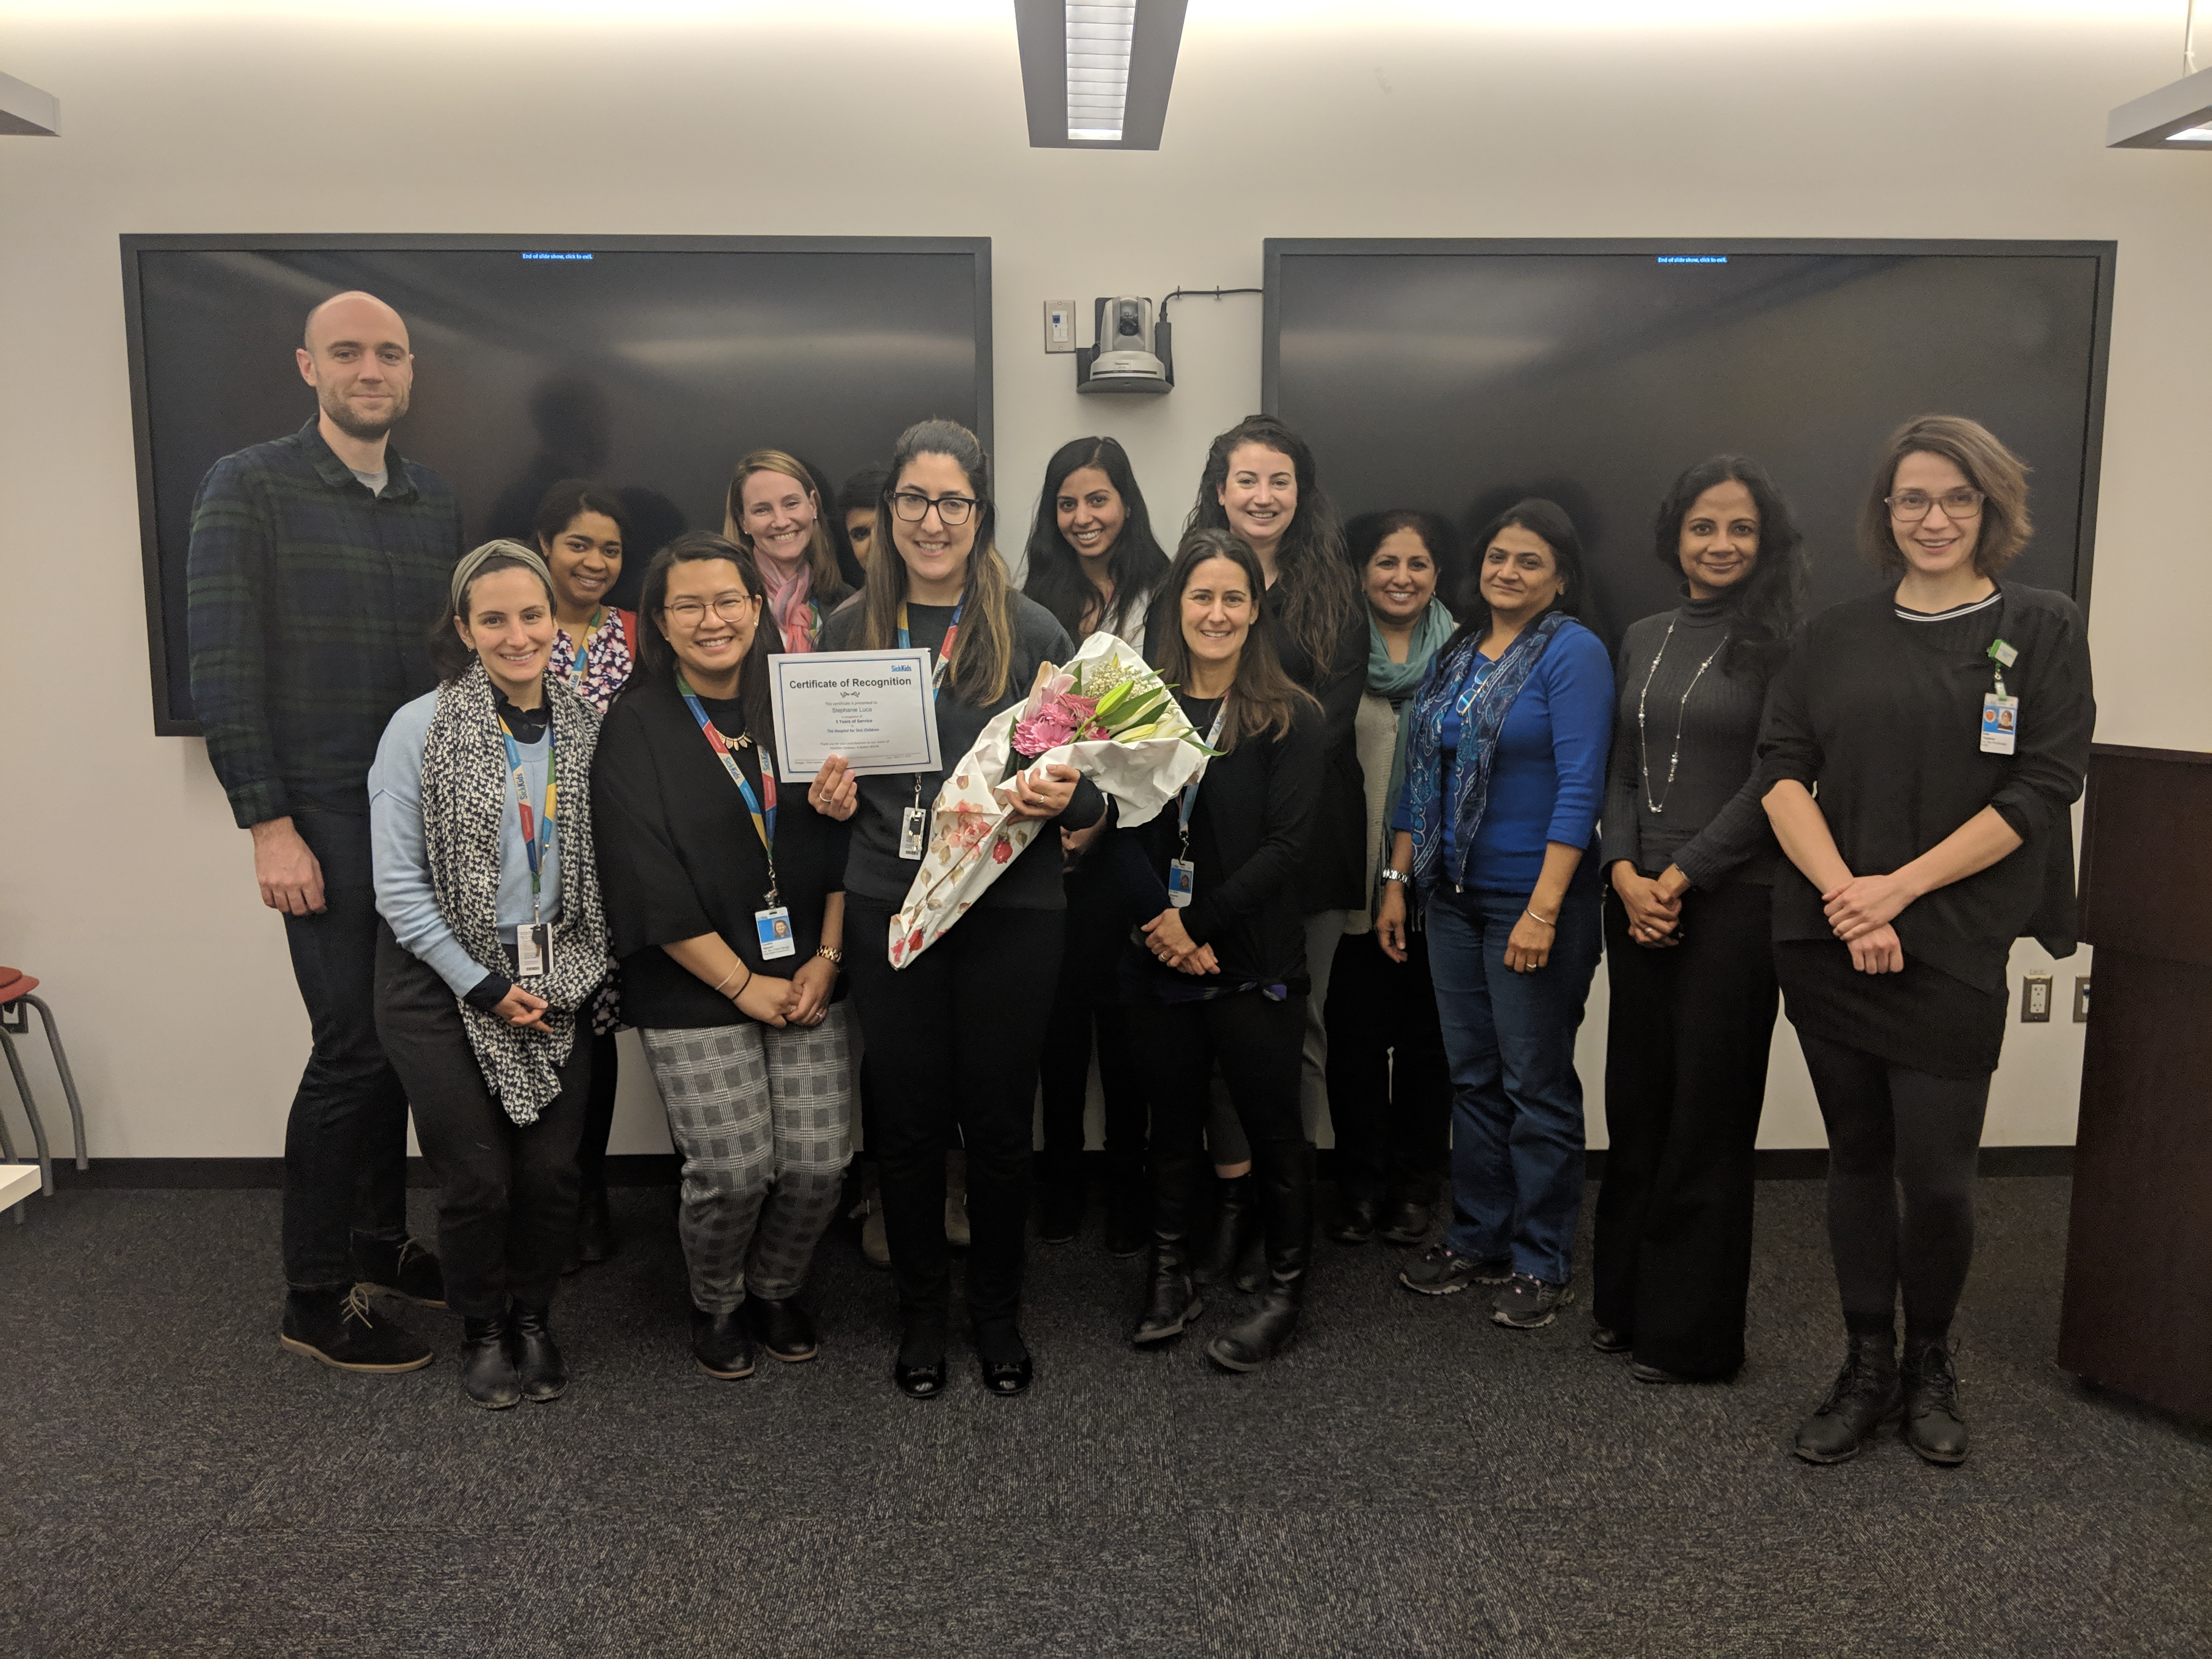 Celebrating Stephanie's 5 Years at SickKids - March 2019